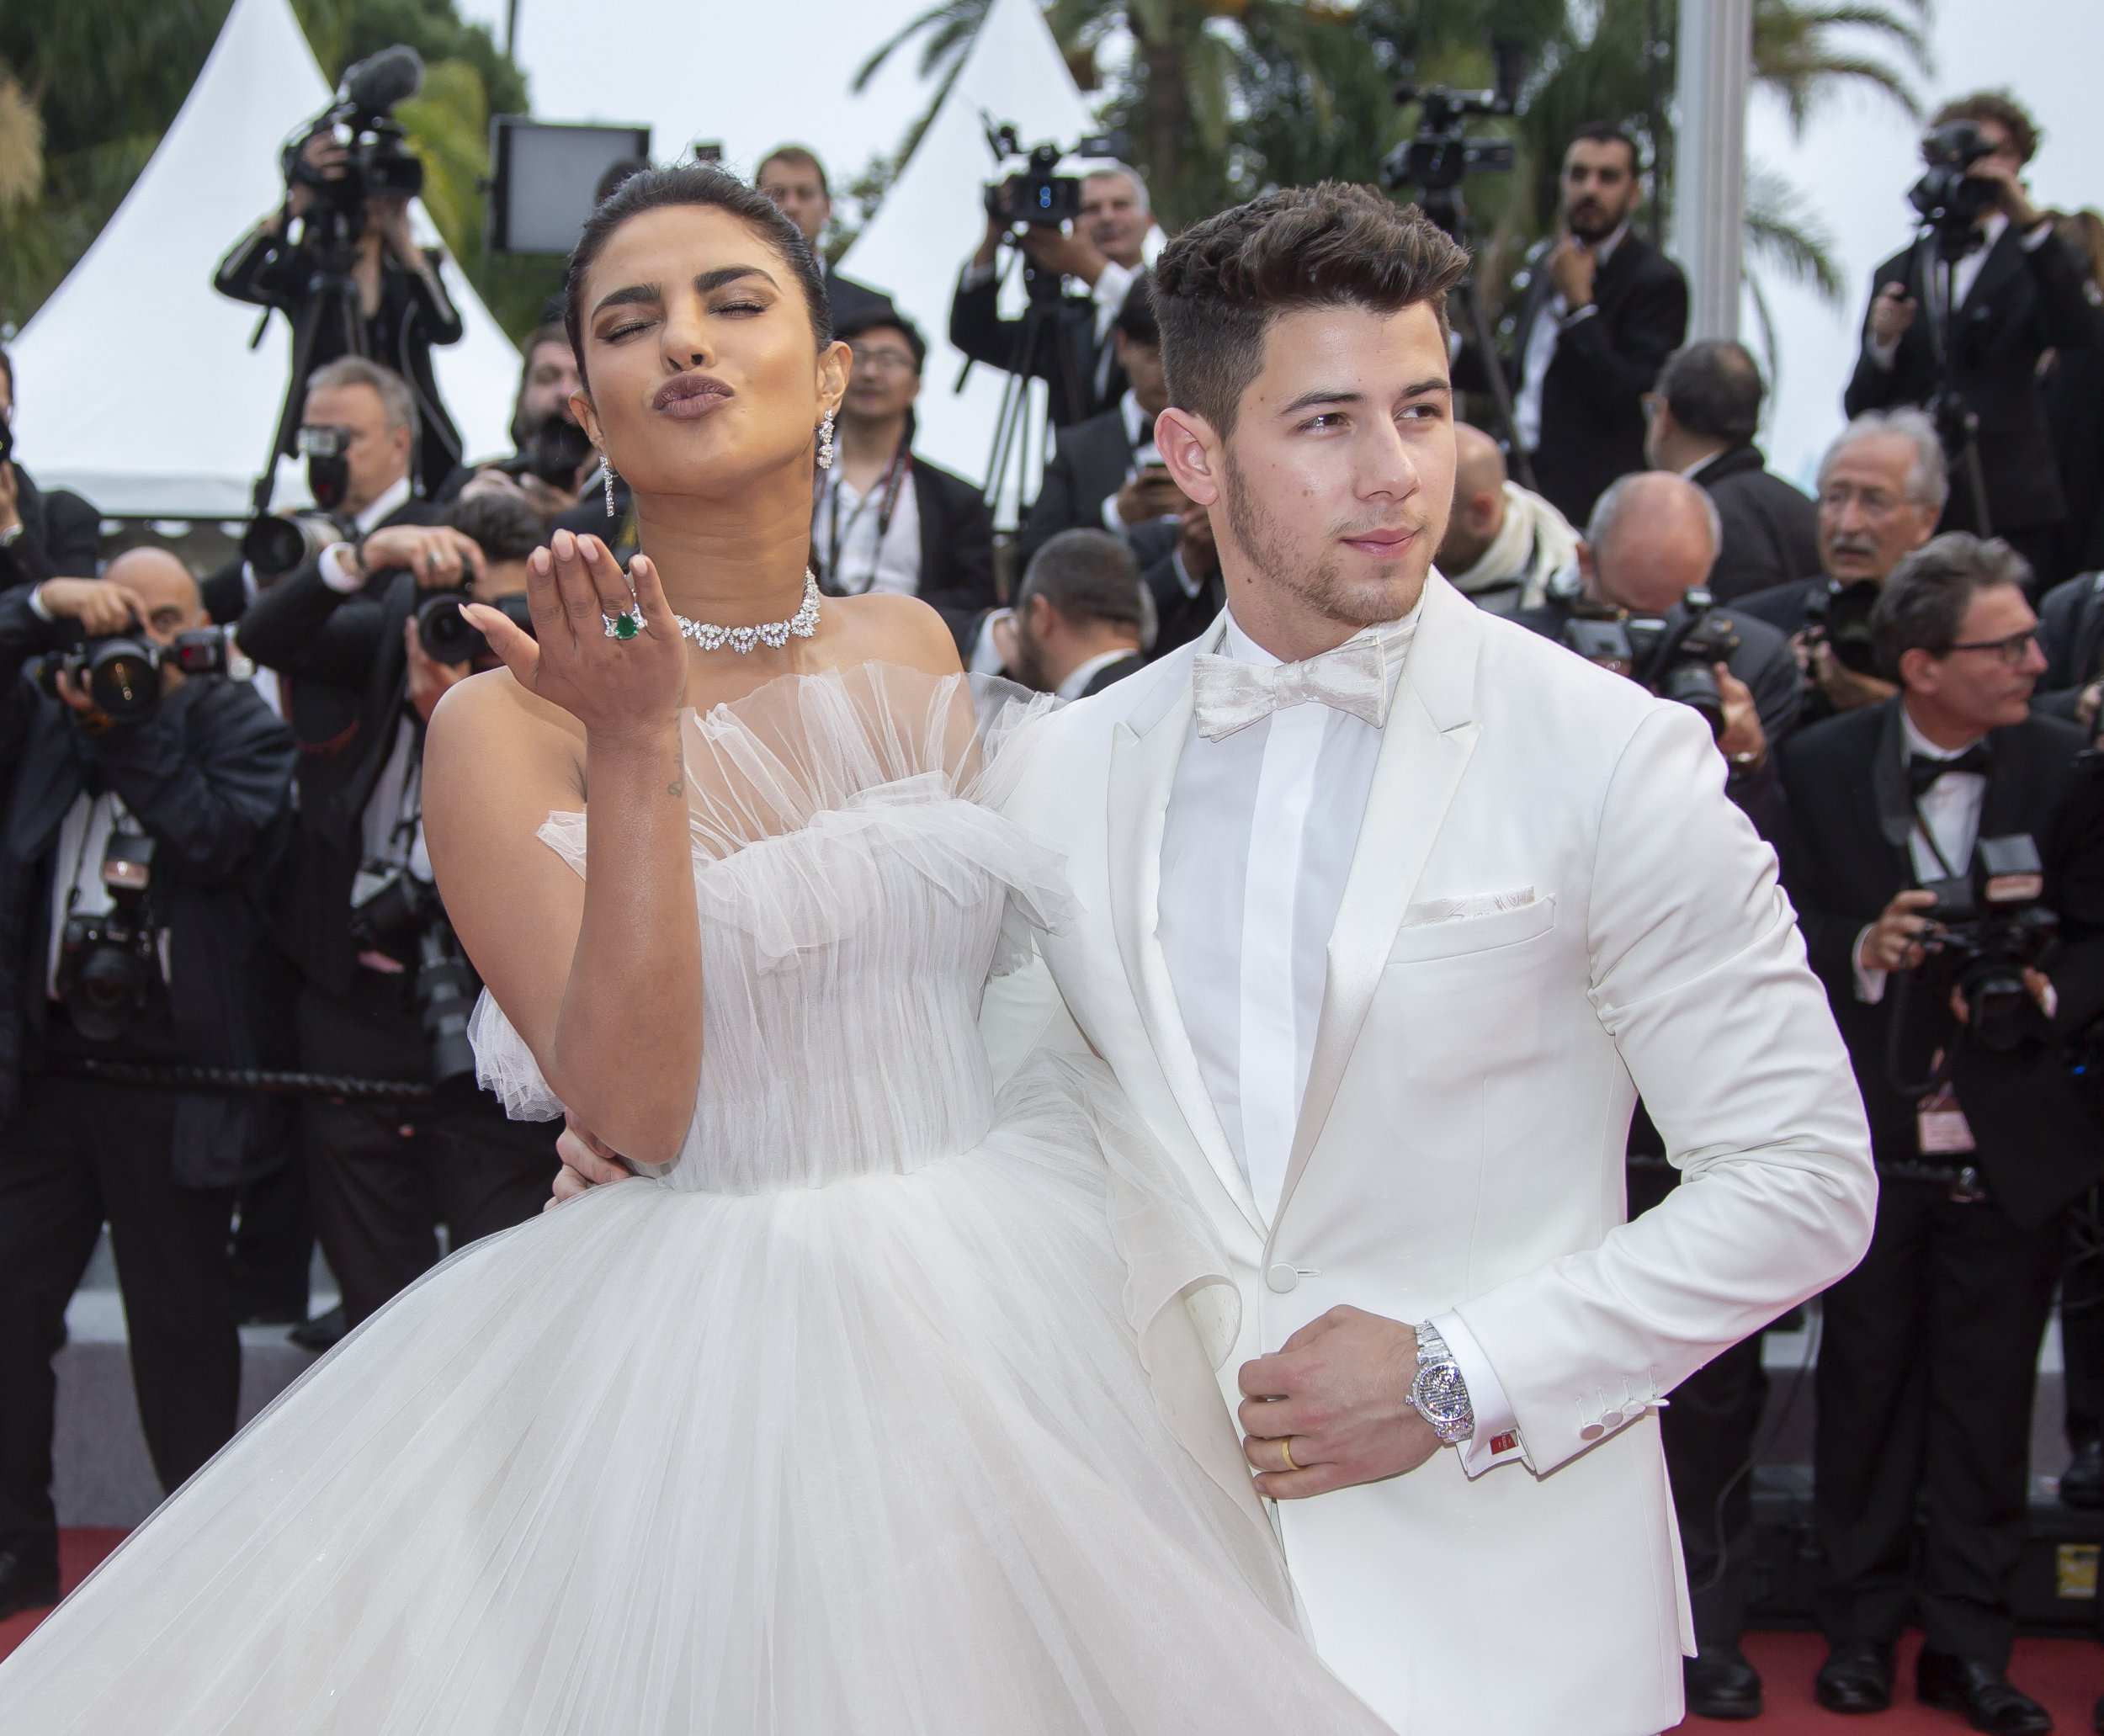 Nick Jonas posts adorable tribute to wife Priyanka Chopra: 'I am honoured to be your husband'